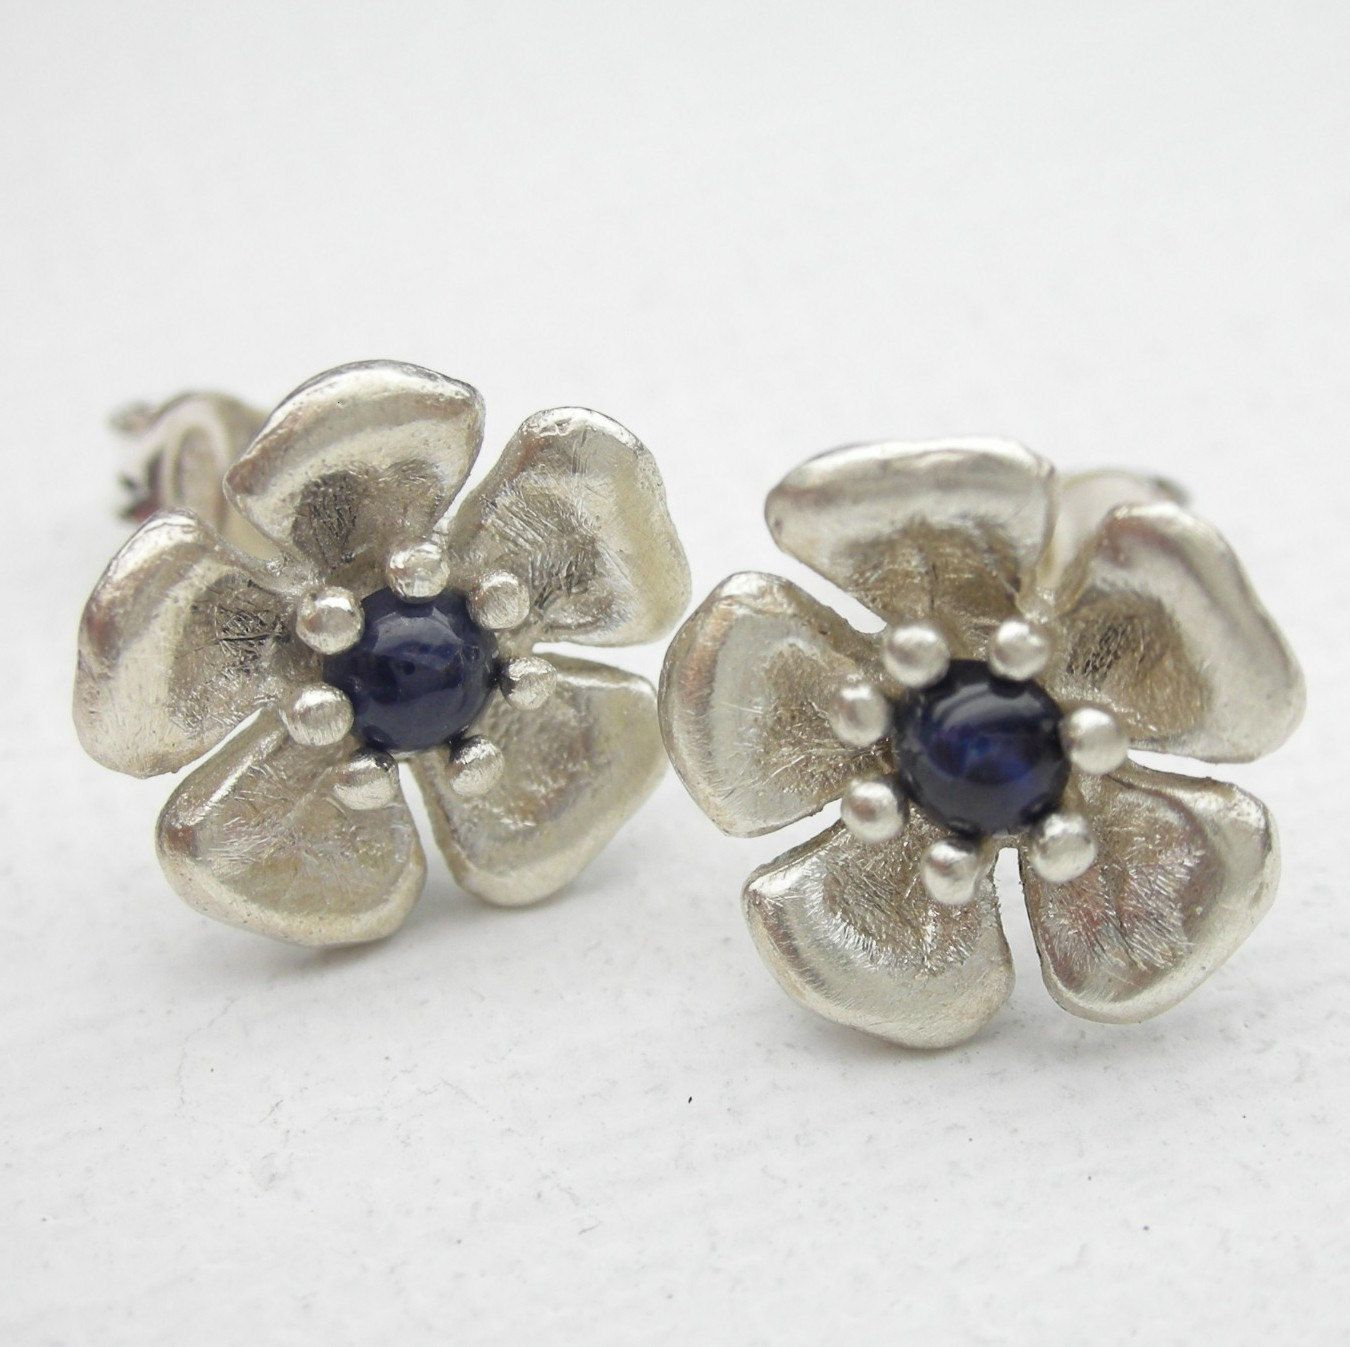 Blue Sapphire cherry blossom earrings in Sterling Silver. $125.00, via Etsy.